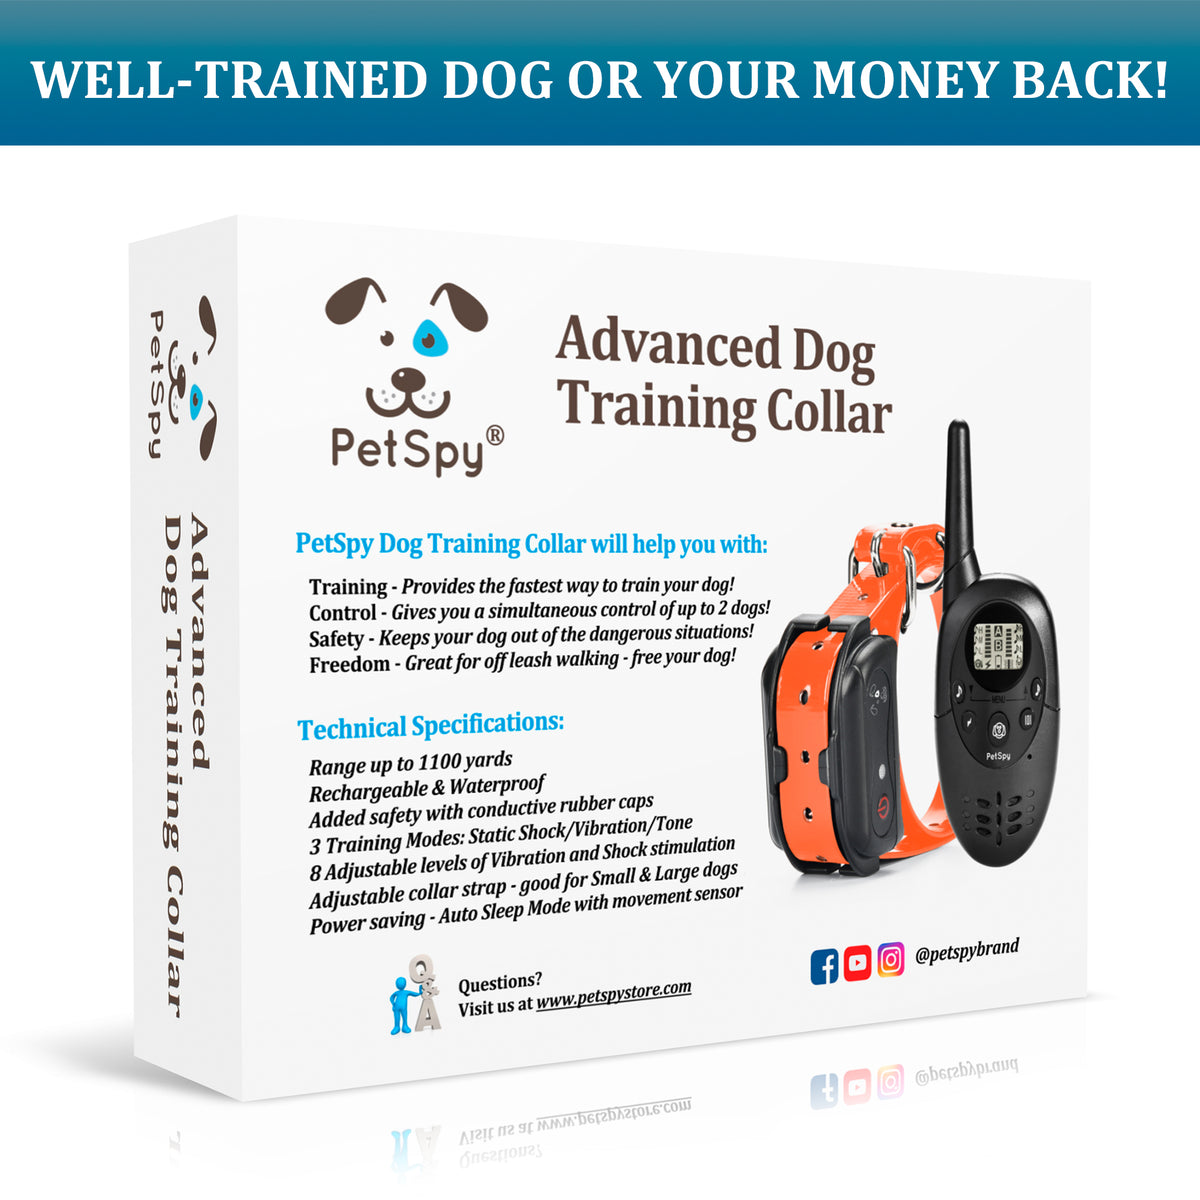 PetSpy M86N package. Well trained dog or your money back!